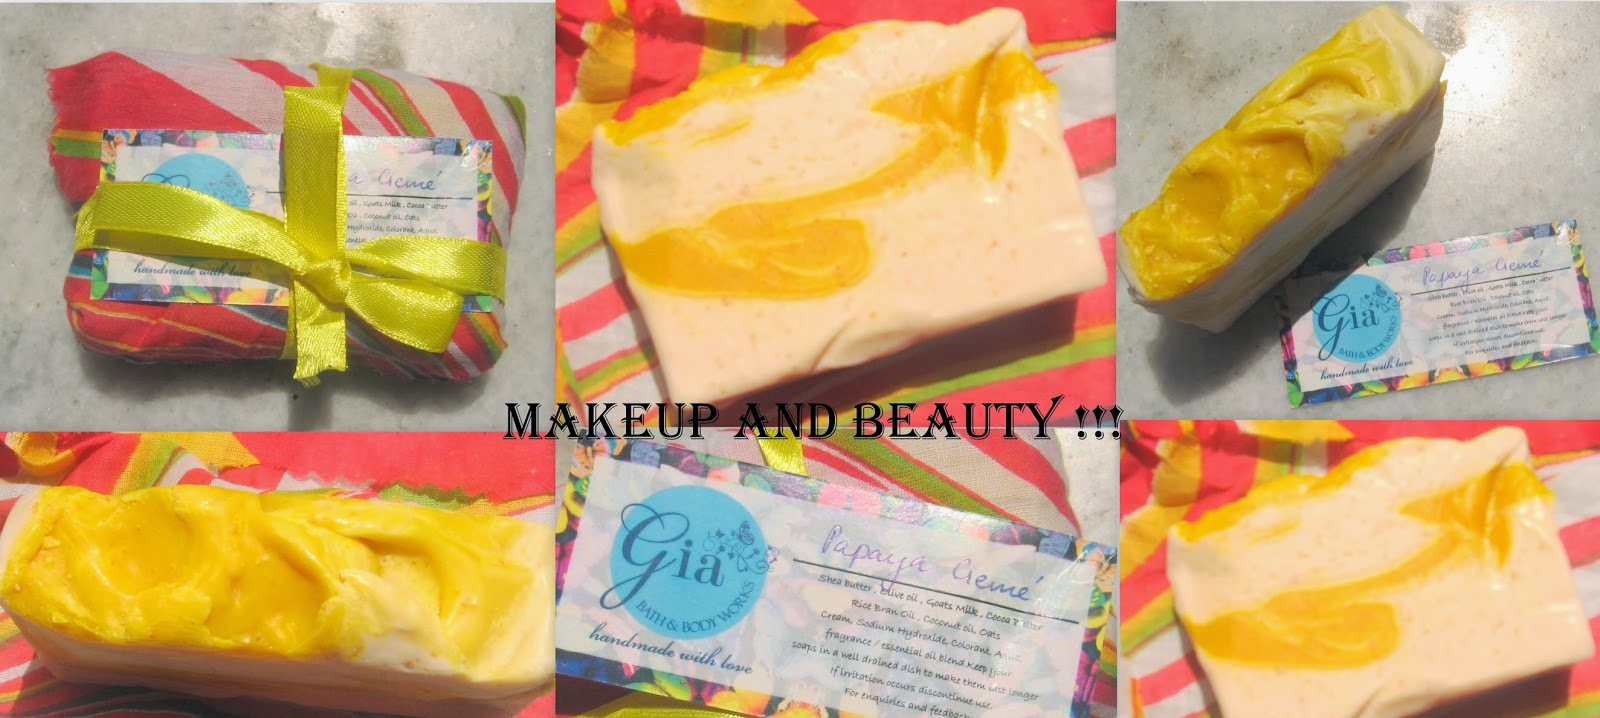 makeup and beauty review on gia bath and body works gia bath and body works products are totally handmade and so they are no chemicals in it coming to the shower gels